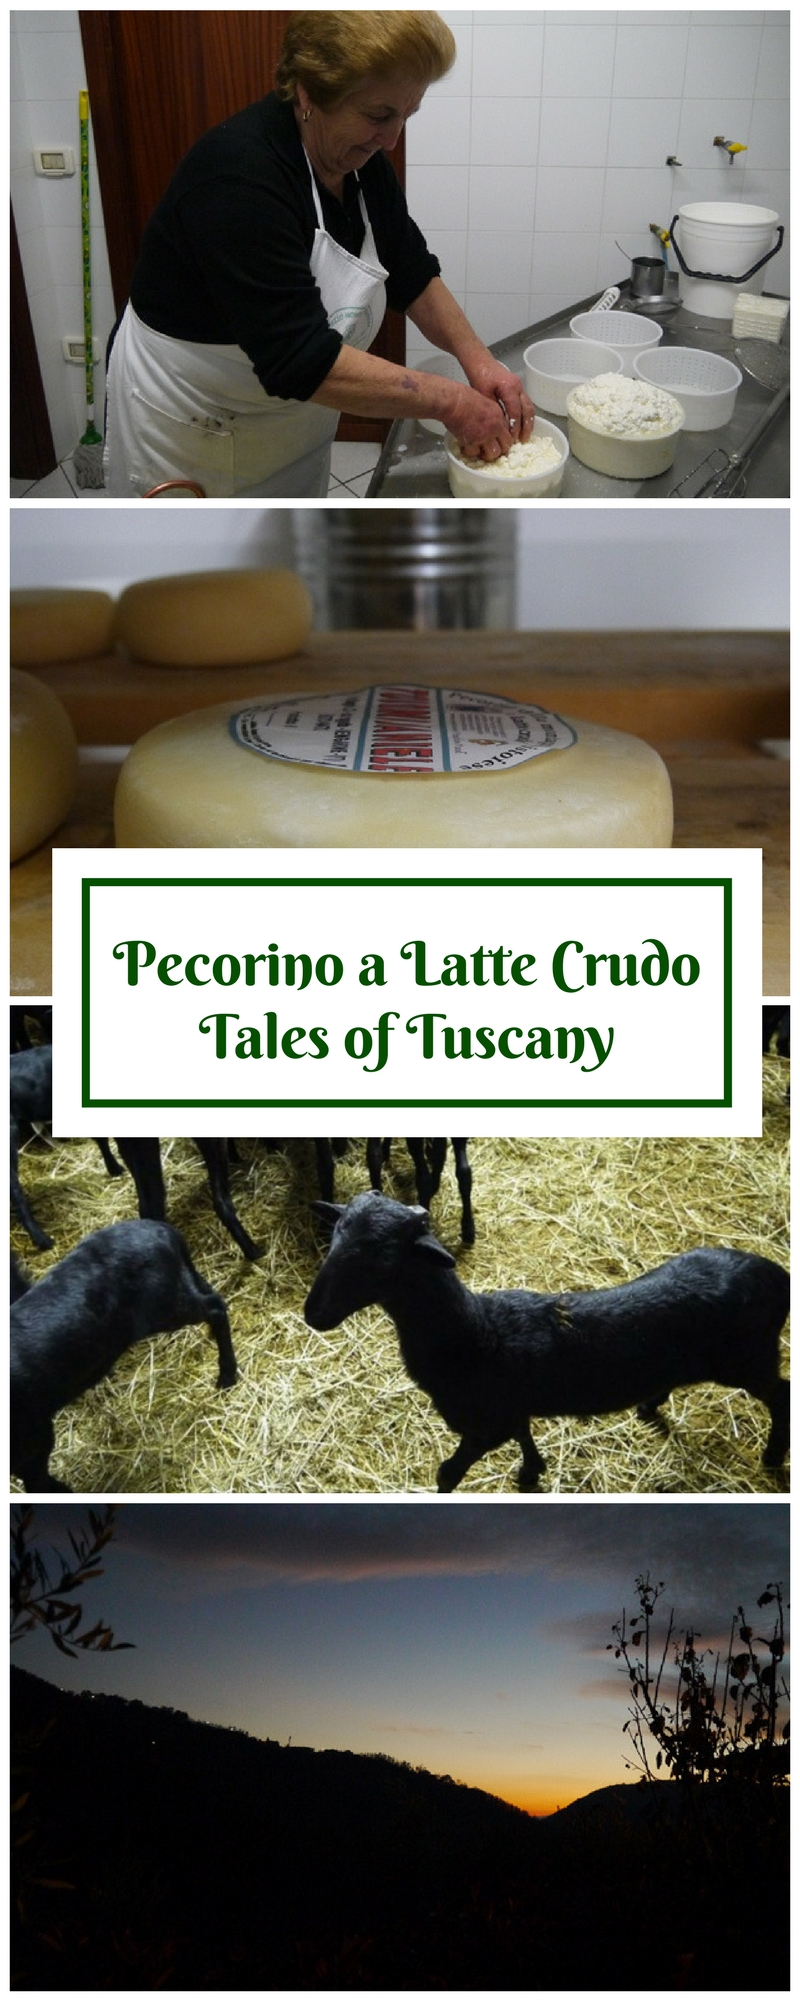 Tuscany Cheese Making -Pecorino a Latte Crudo - Sheeps Milk Cheese Tuscany - Slow Food Tuscany